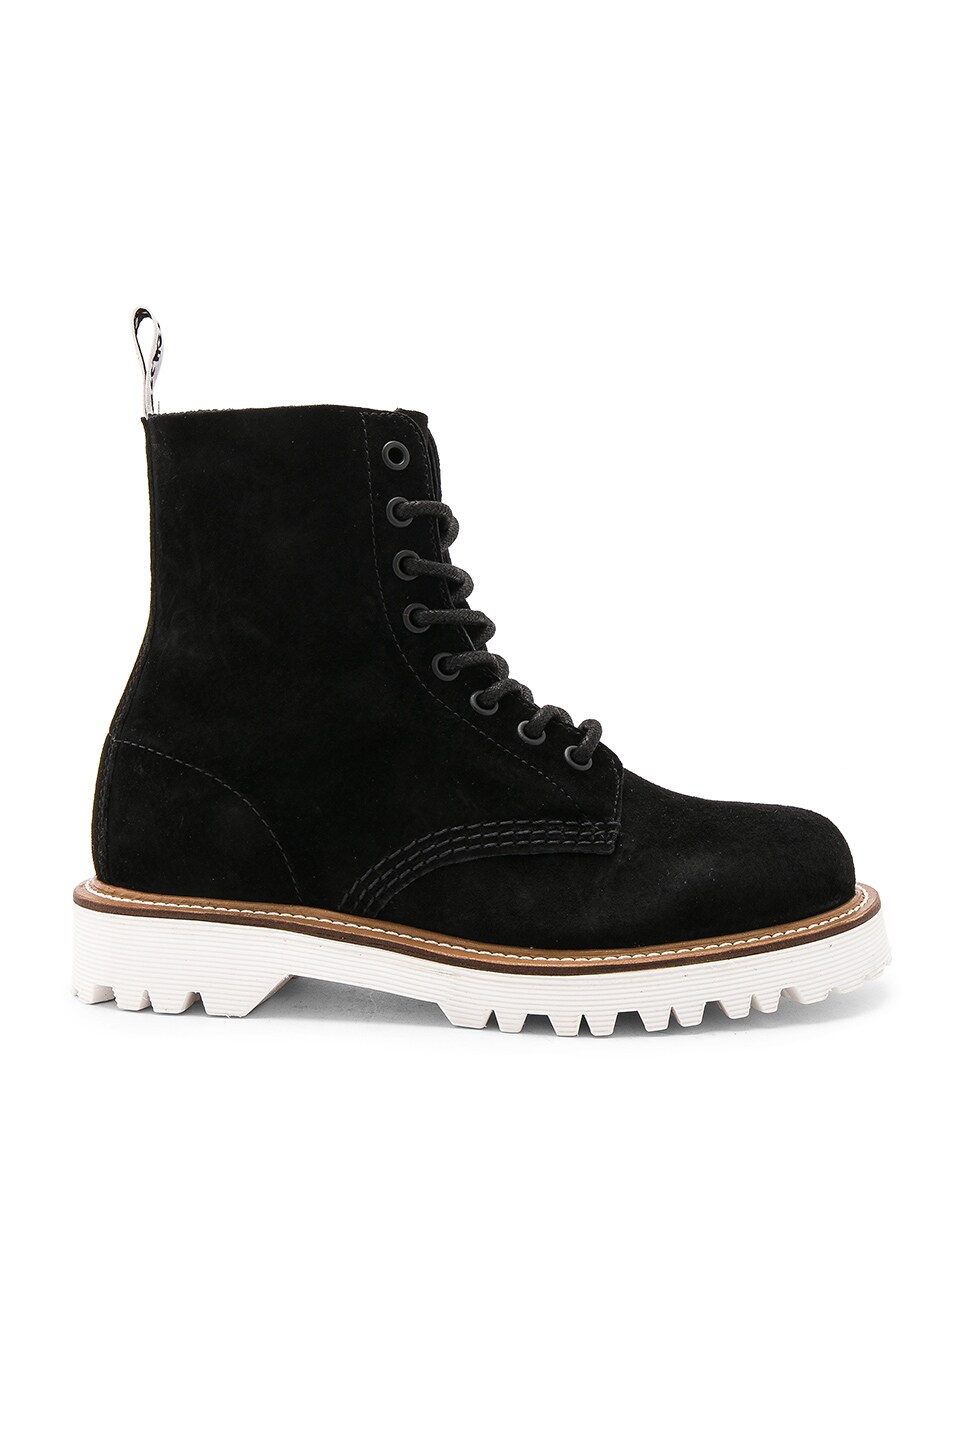 Pascal II 8 Eye Boot by Dr. Martens